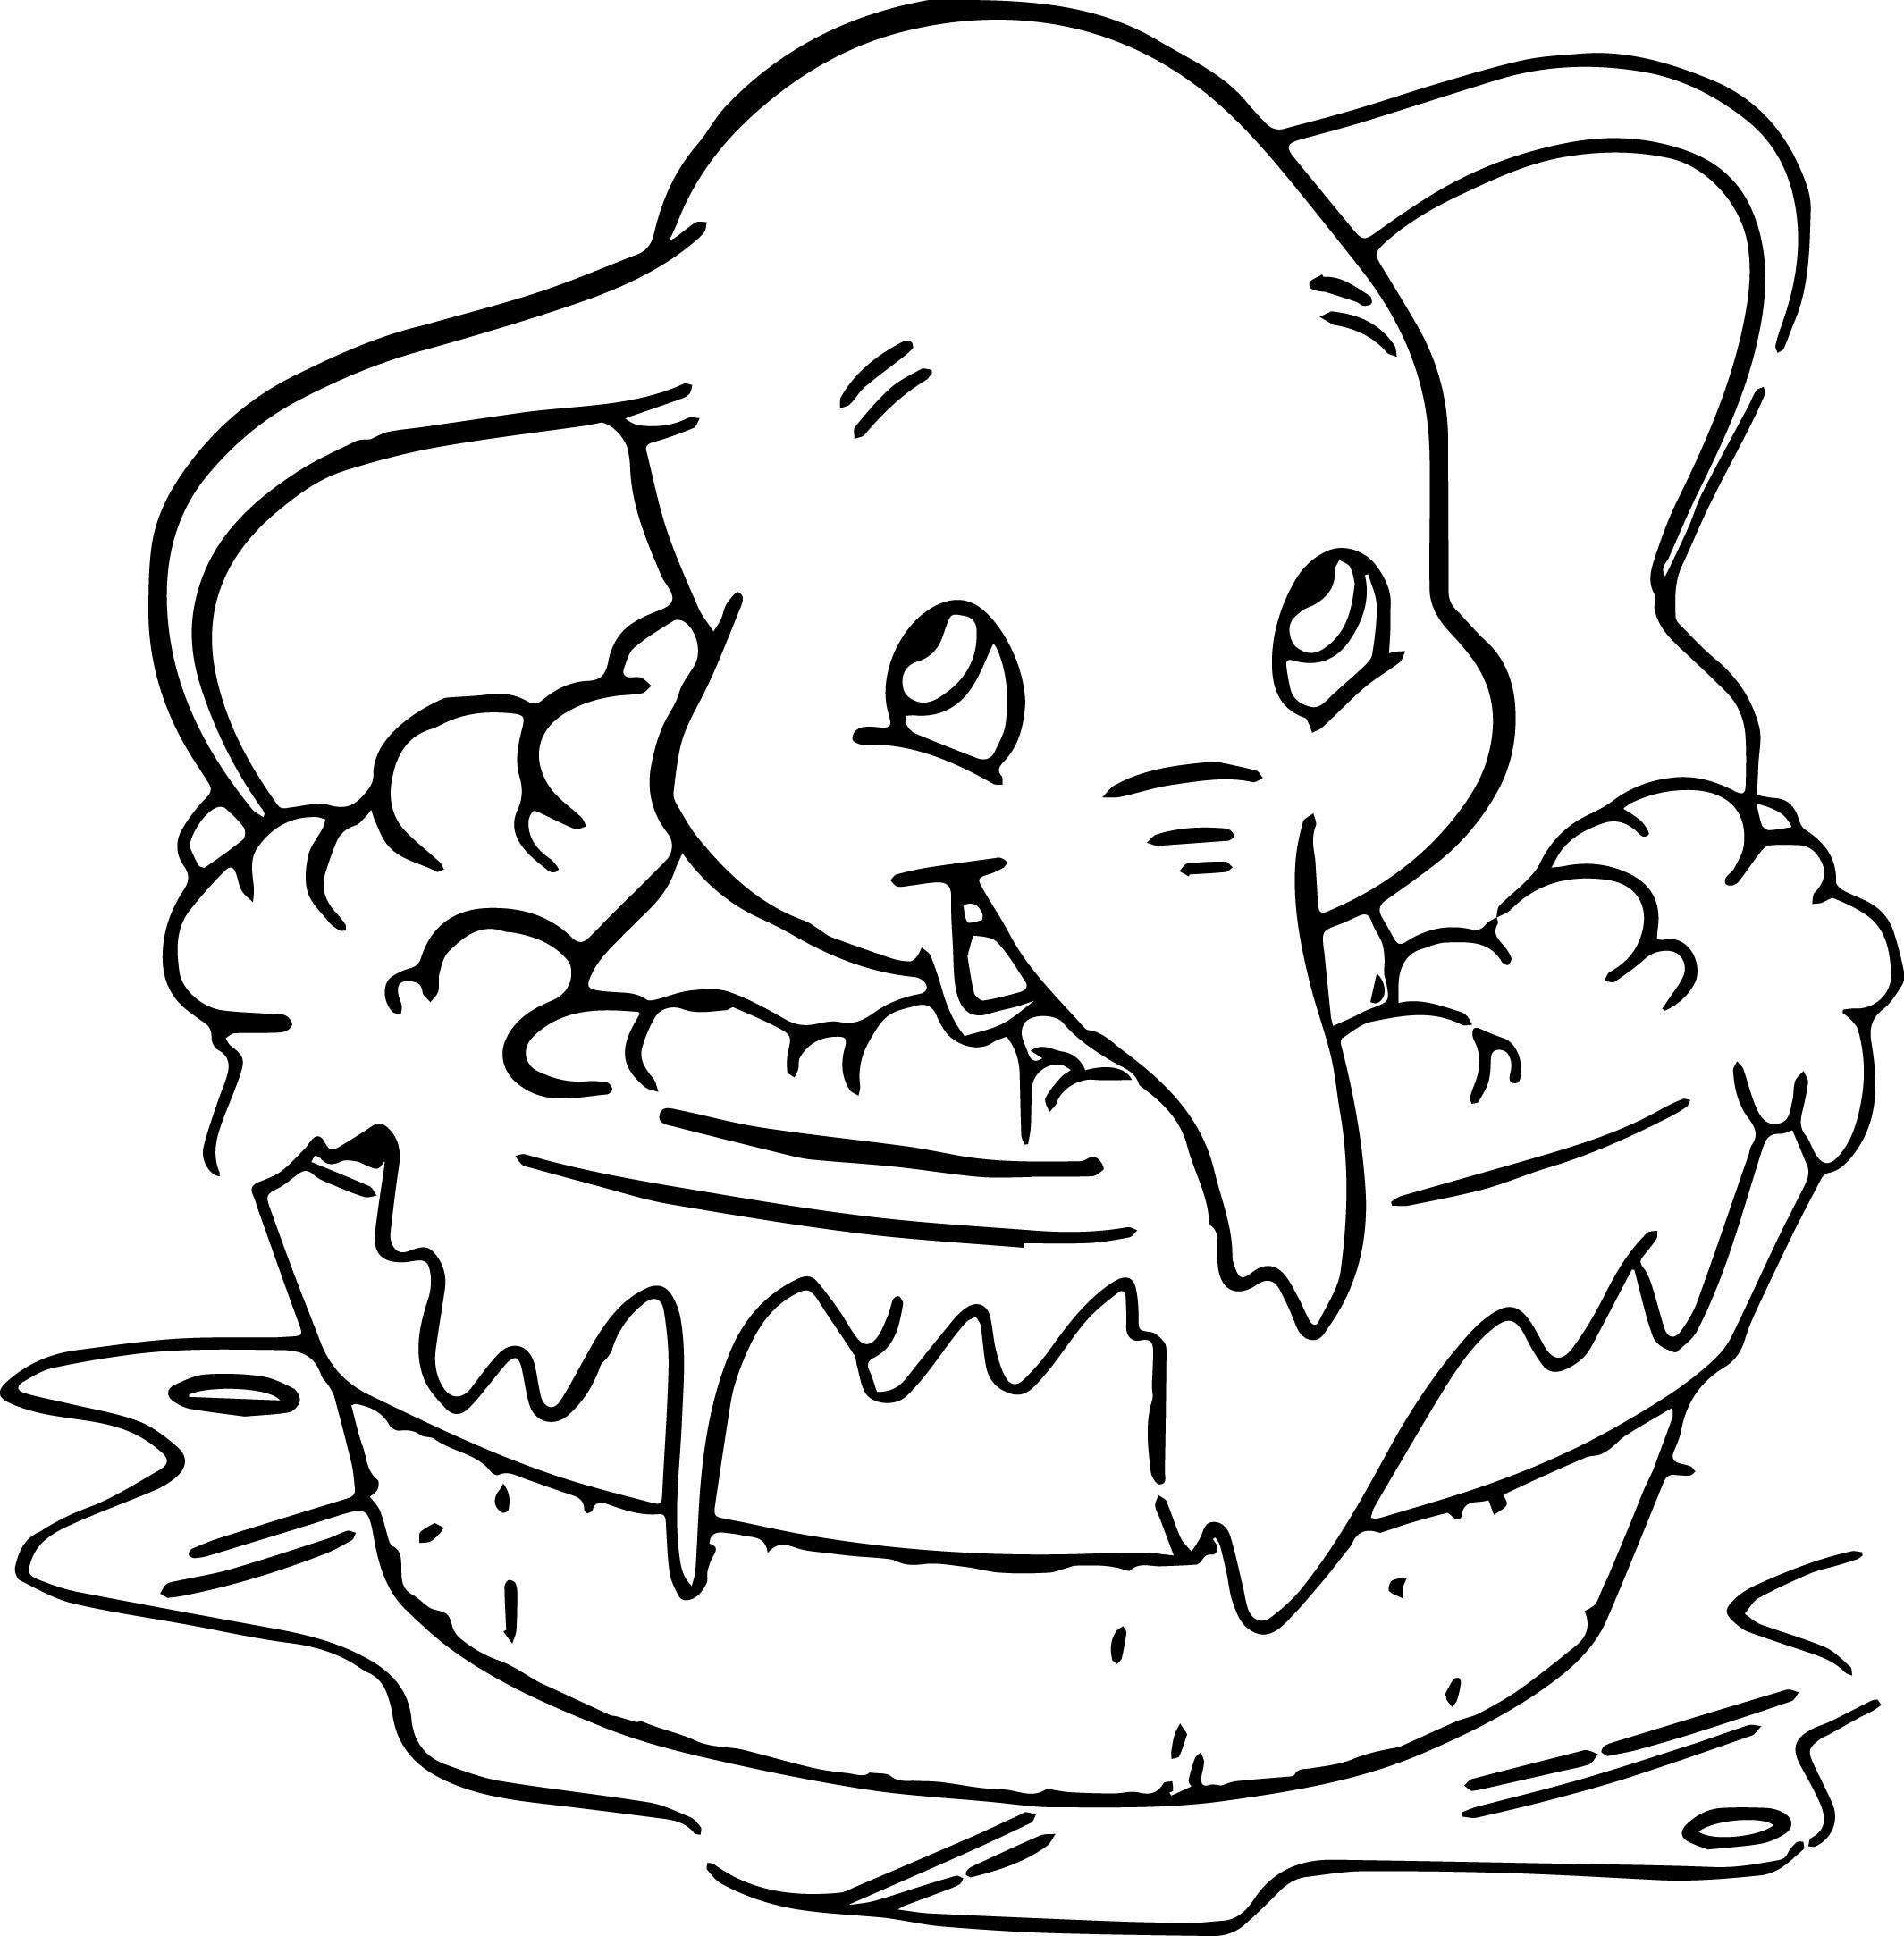 Disney Dumbo Elephant Coloring Pages  Elephant coloring page